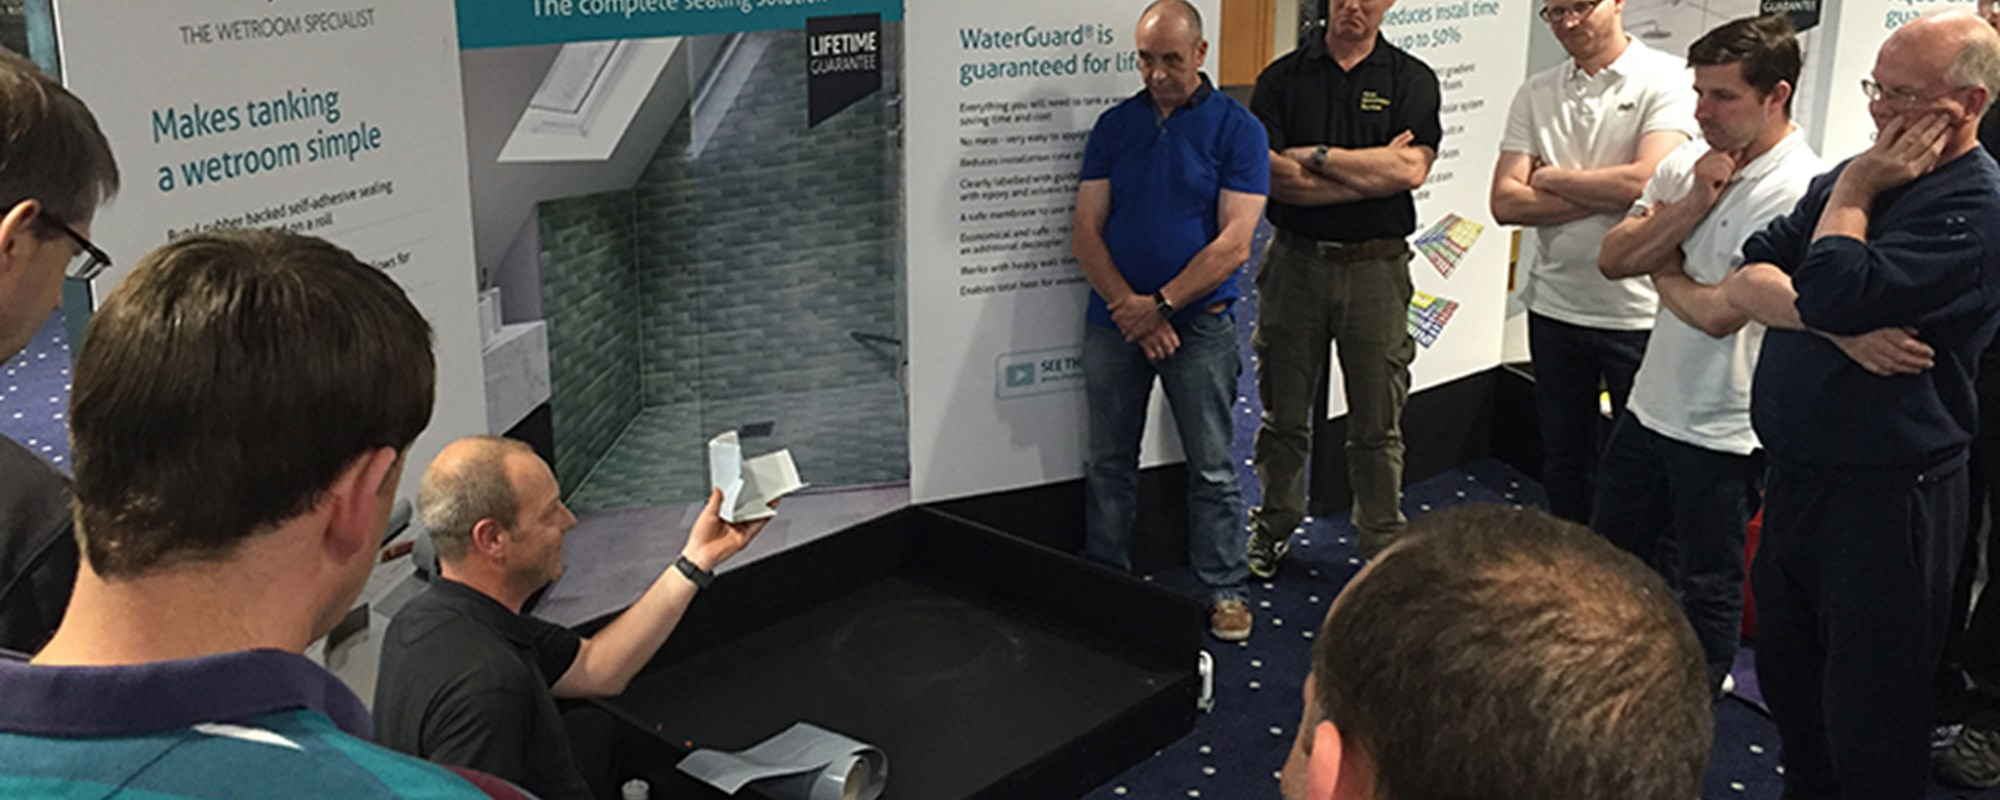 tanking wetroom installer demonstration